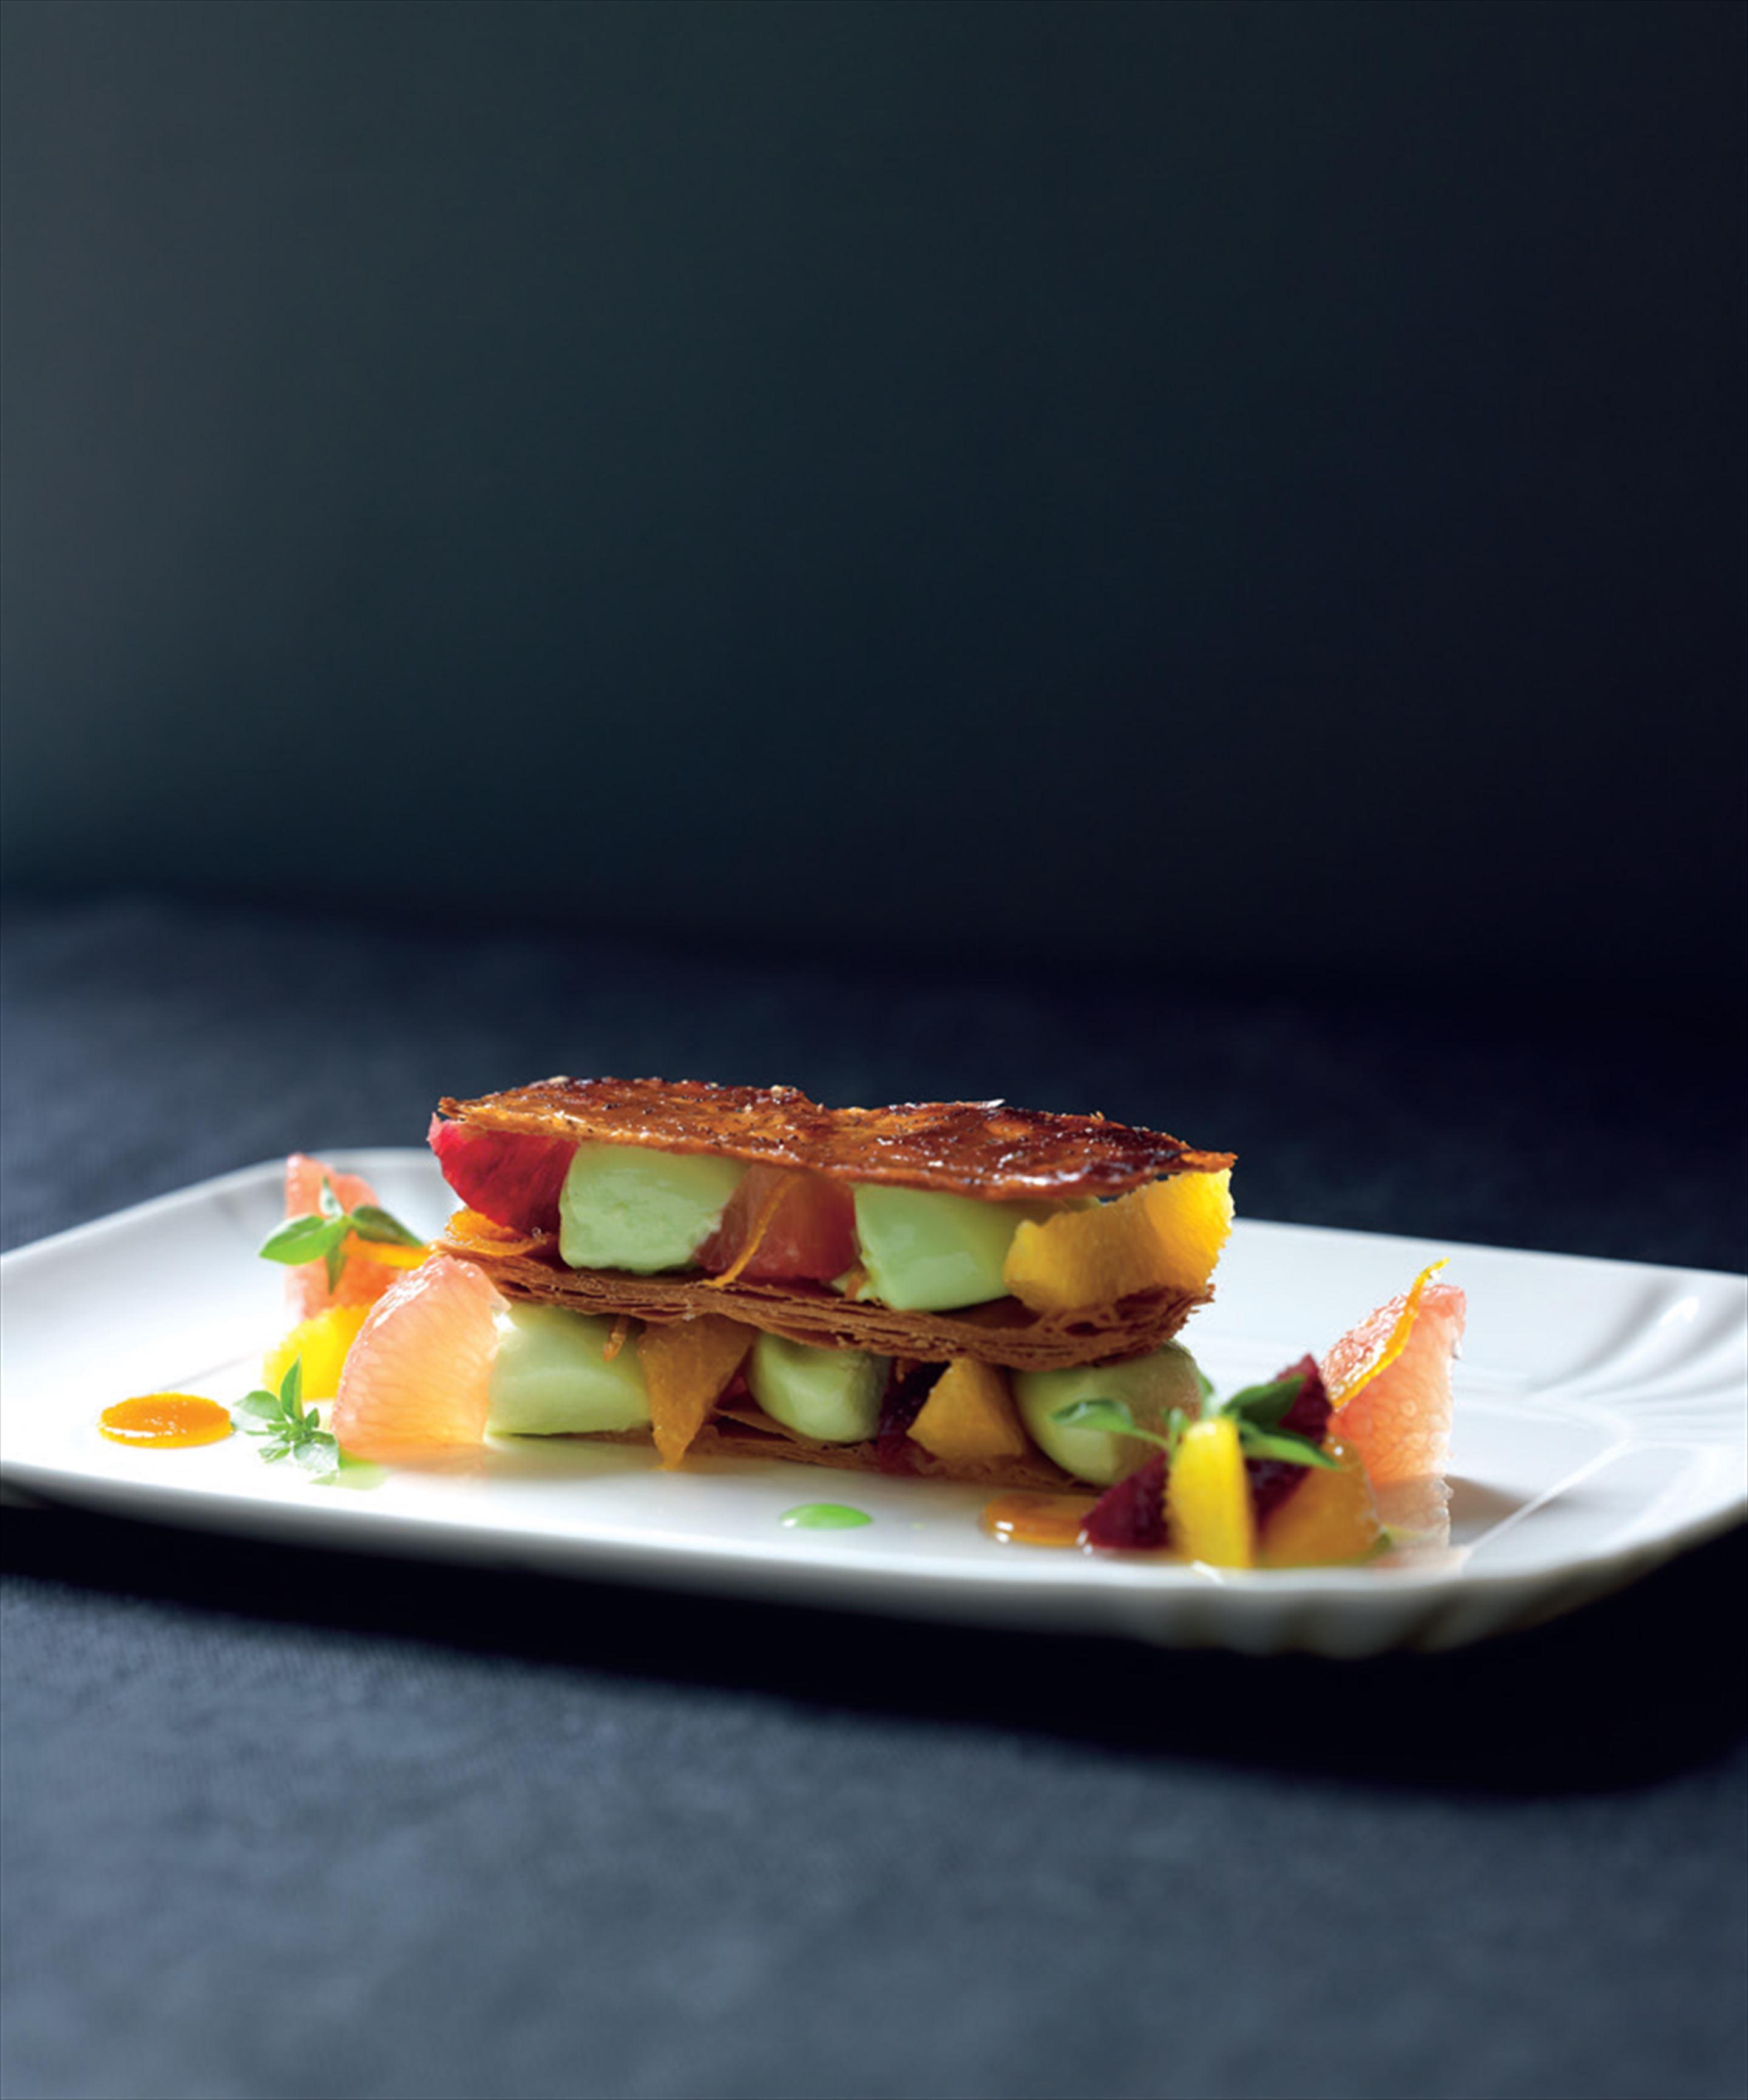 Mille-feuille with citrus fruits and basil